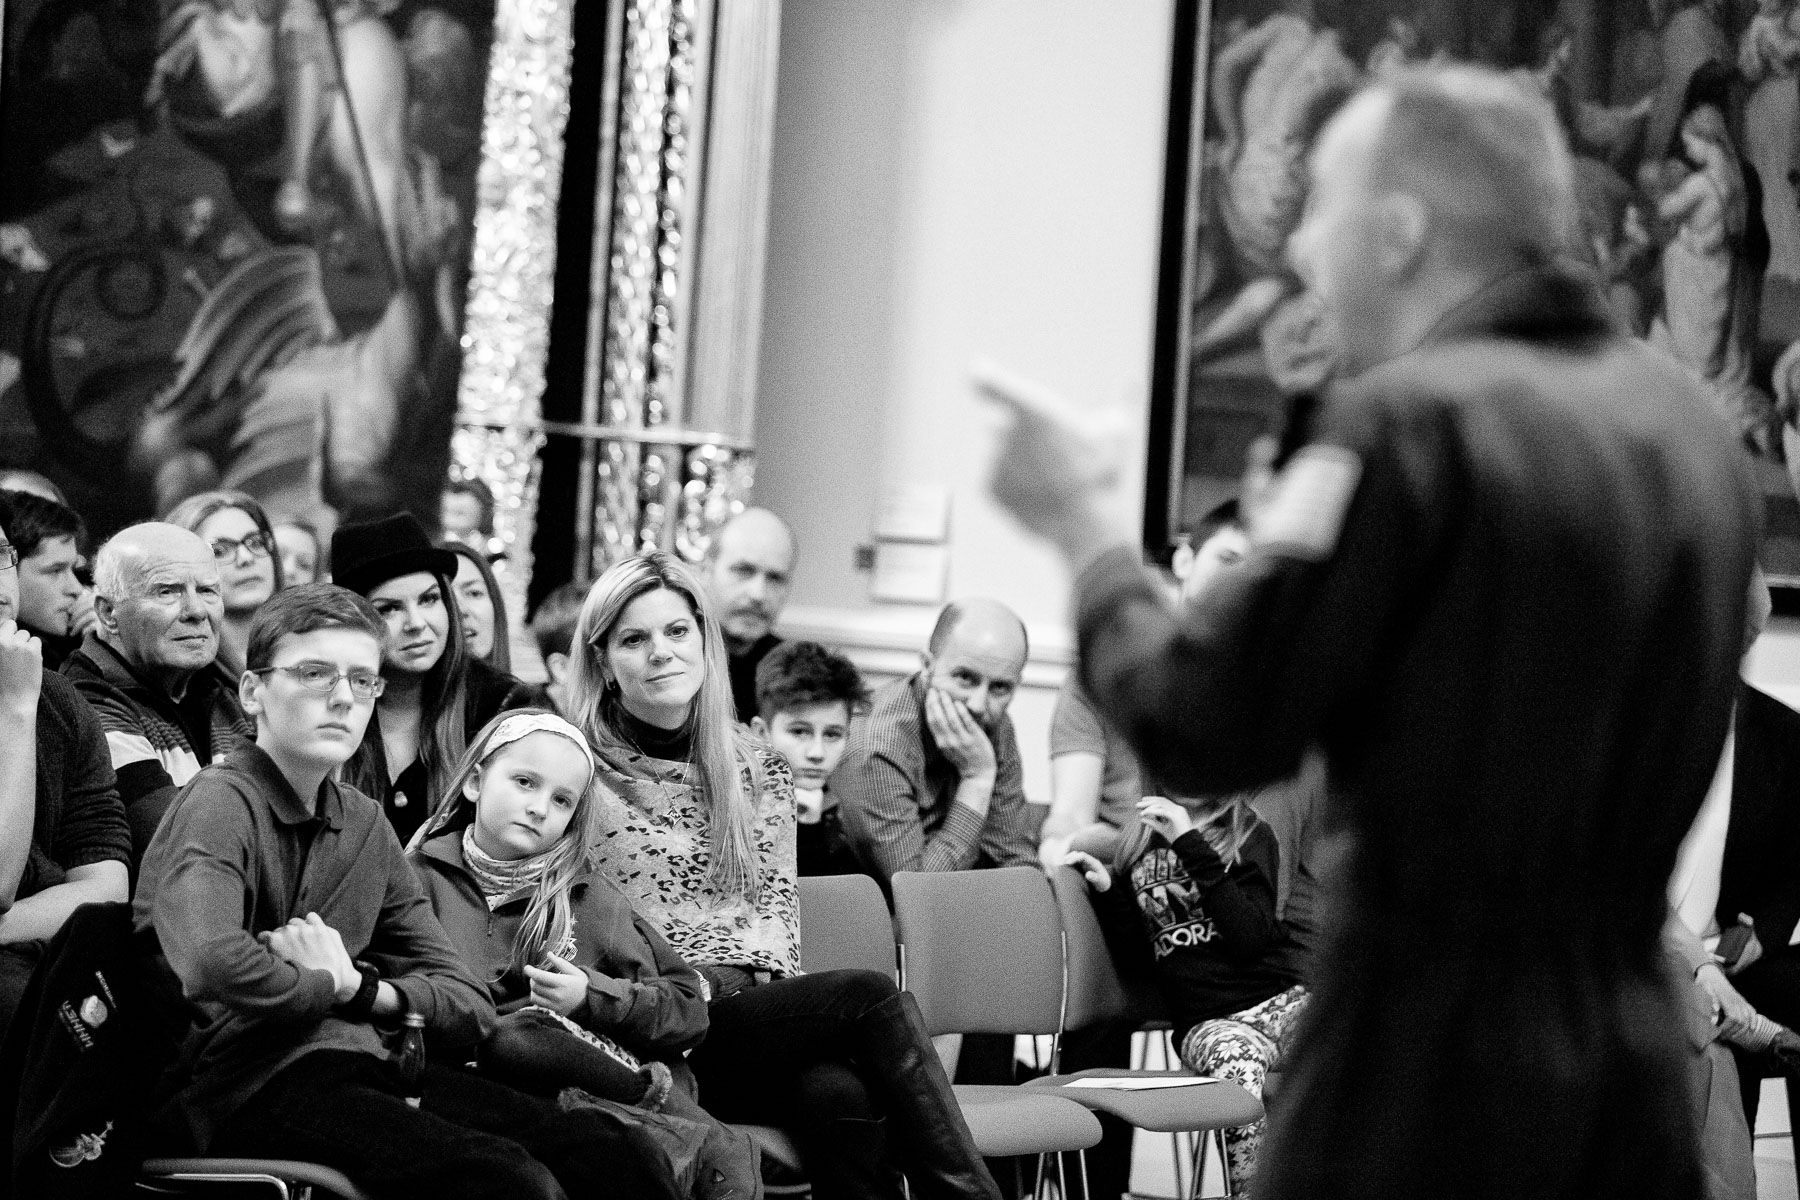 Randy's family listens to his final presentation on their 4-day visit to Slovenia in the National Gallery in Ljubljana.